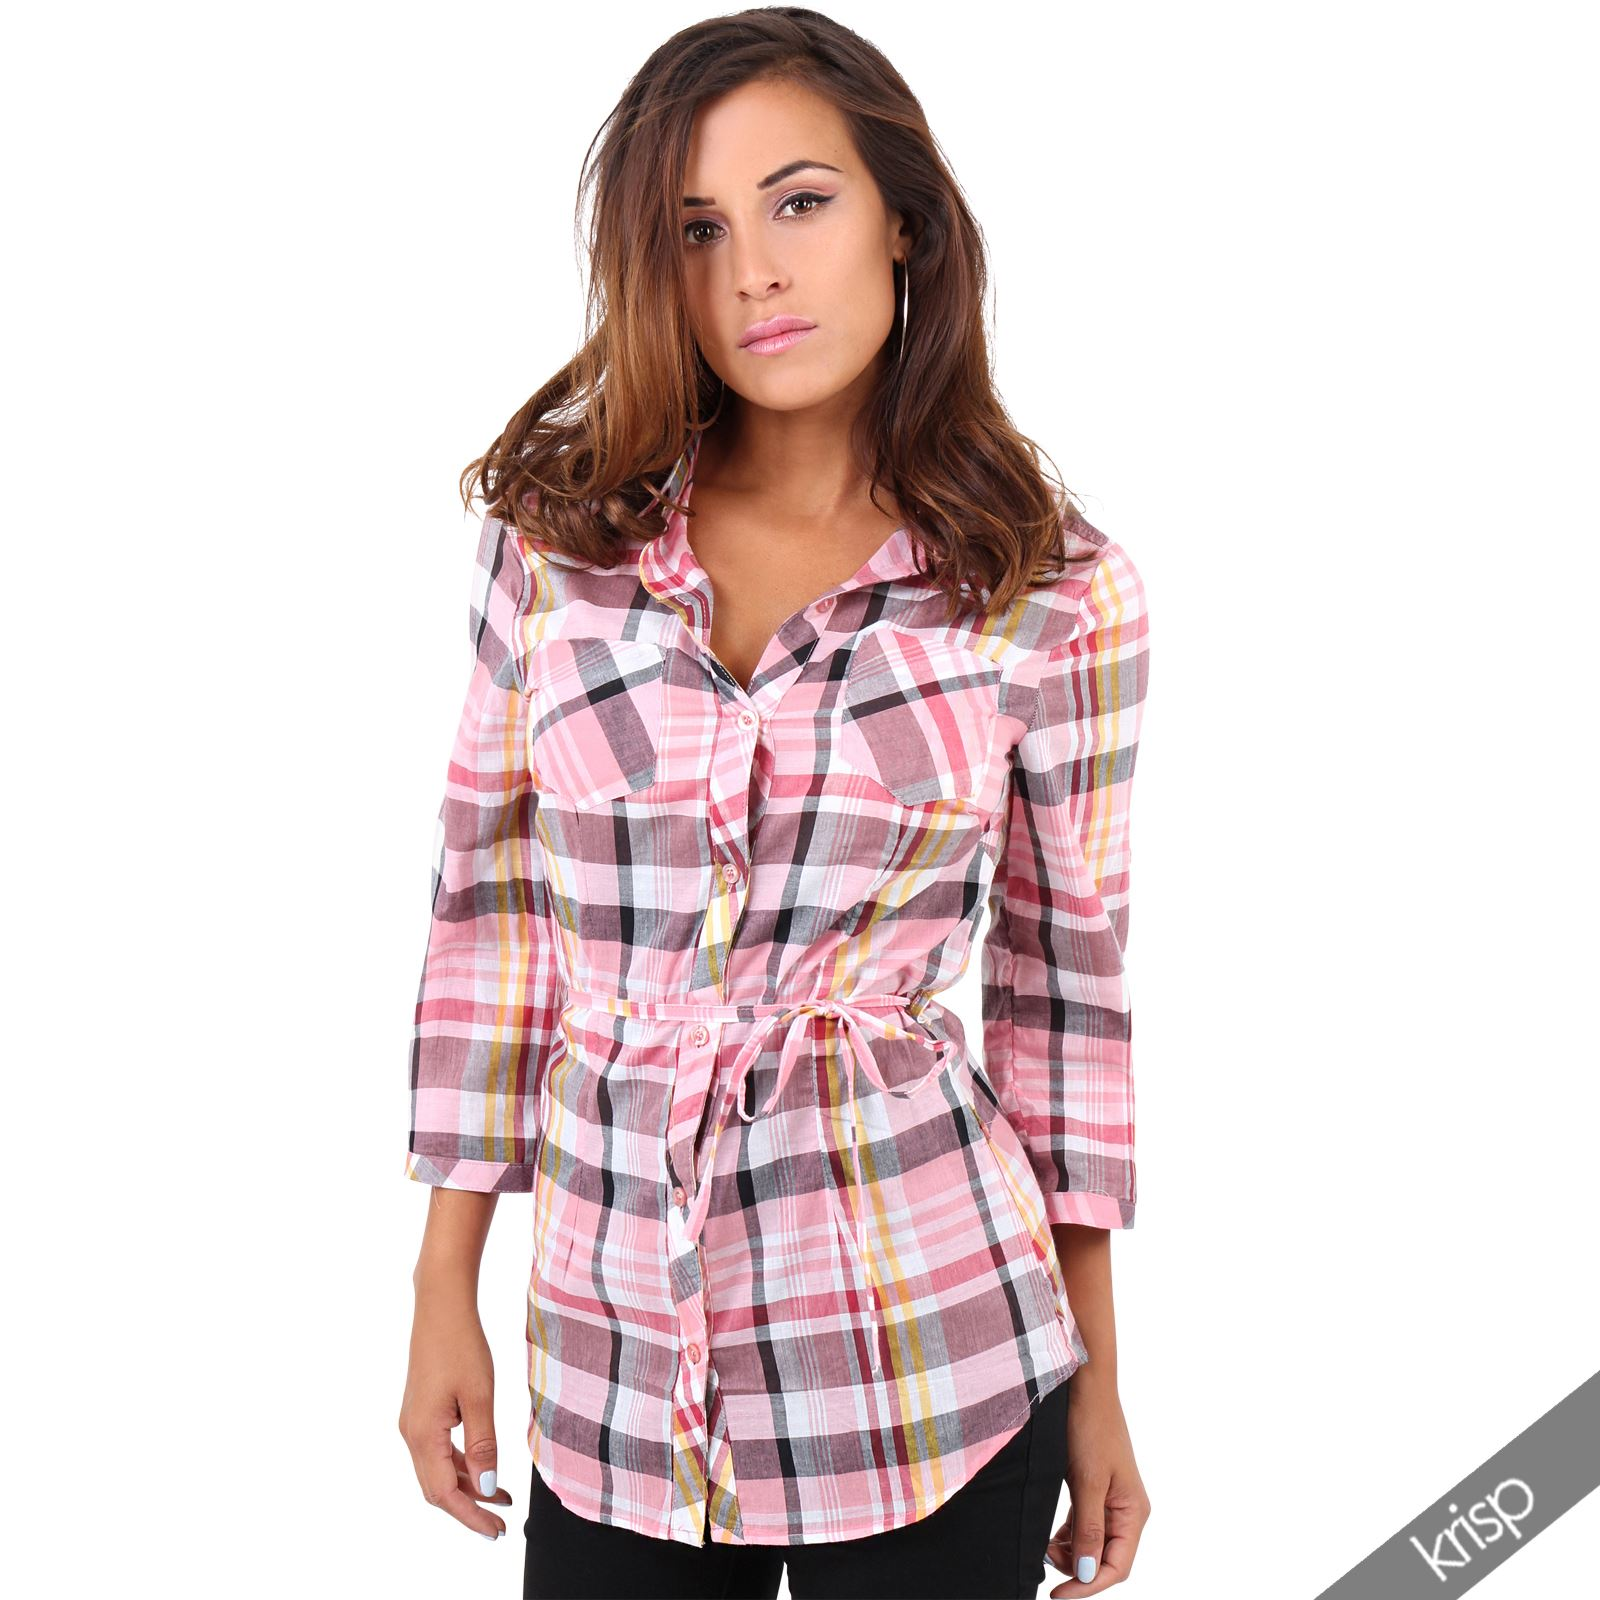 You searched for: pink plaid blouse! Etsy is the home to thousands of handmade, vintage, and one-of-a-kind products and gifts related to your search. No matter what you're looking for or where you are in the world, our global marketplace of sellers can help you find unique and affordable options. Let's get started!